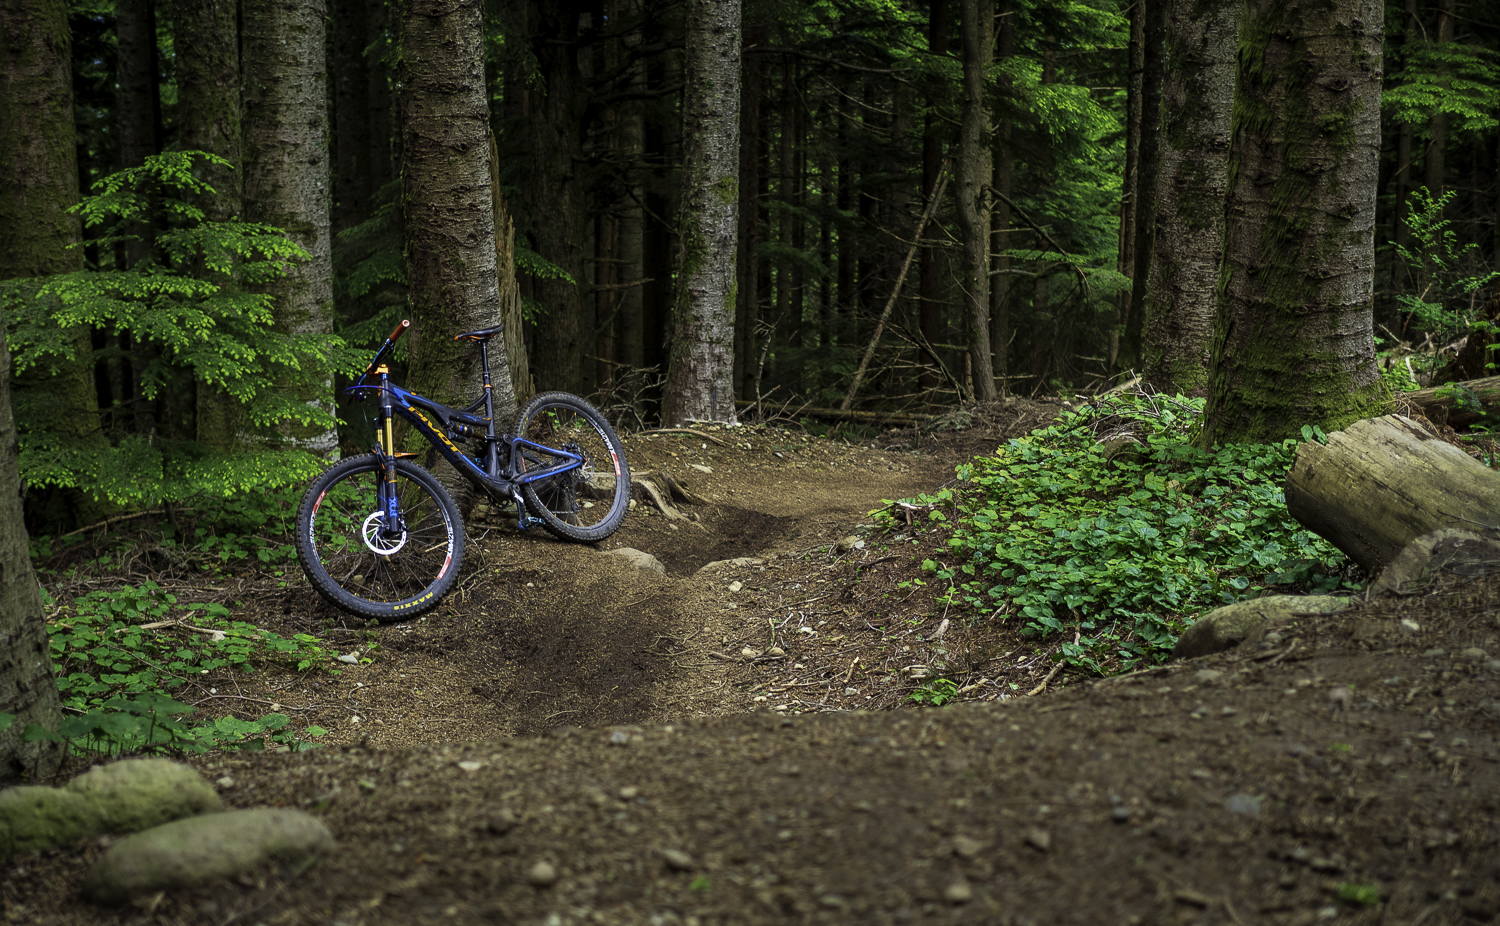 Predator Trail - Tiger Mountain, WA